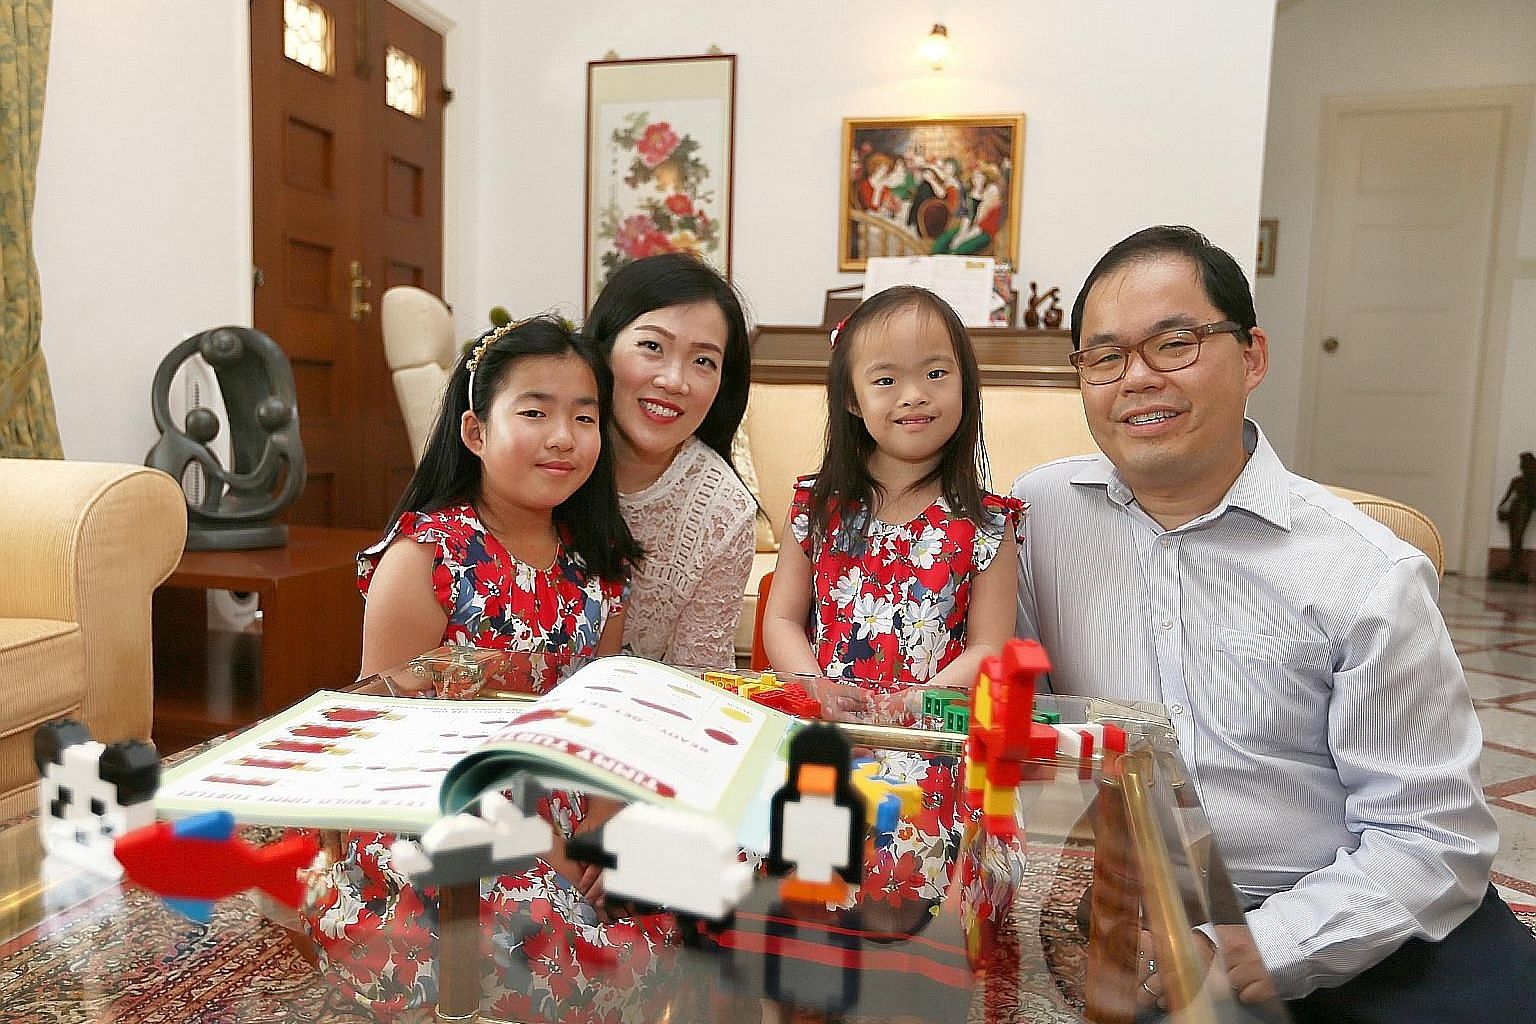 Mr Lim Chee Boon and his wife, Ms Wendy Soh, enrolled their daughter Nichelle in early-intervention programmes and therapies when she was a toddler. Mr Ronald Chen and his wife, Ms Ann Kositchotitana, moved to the United States about three years ago